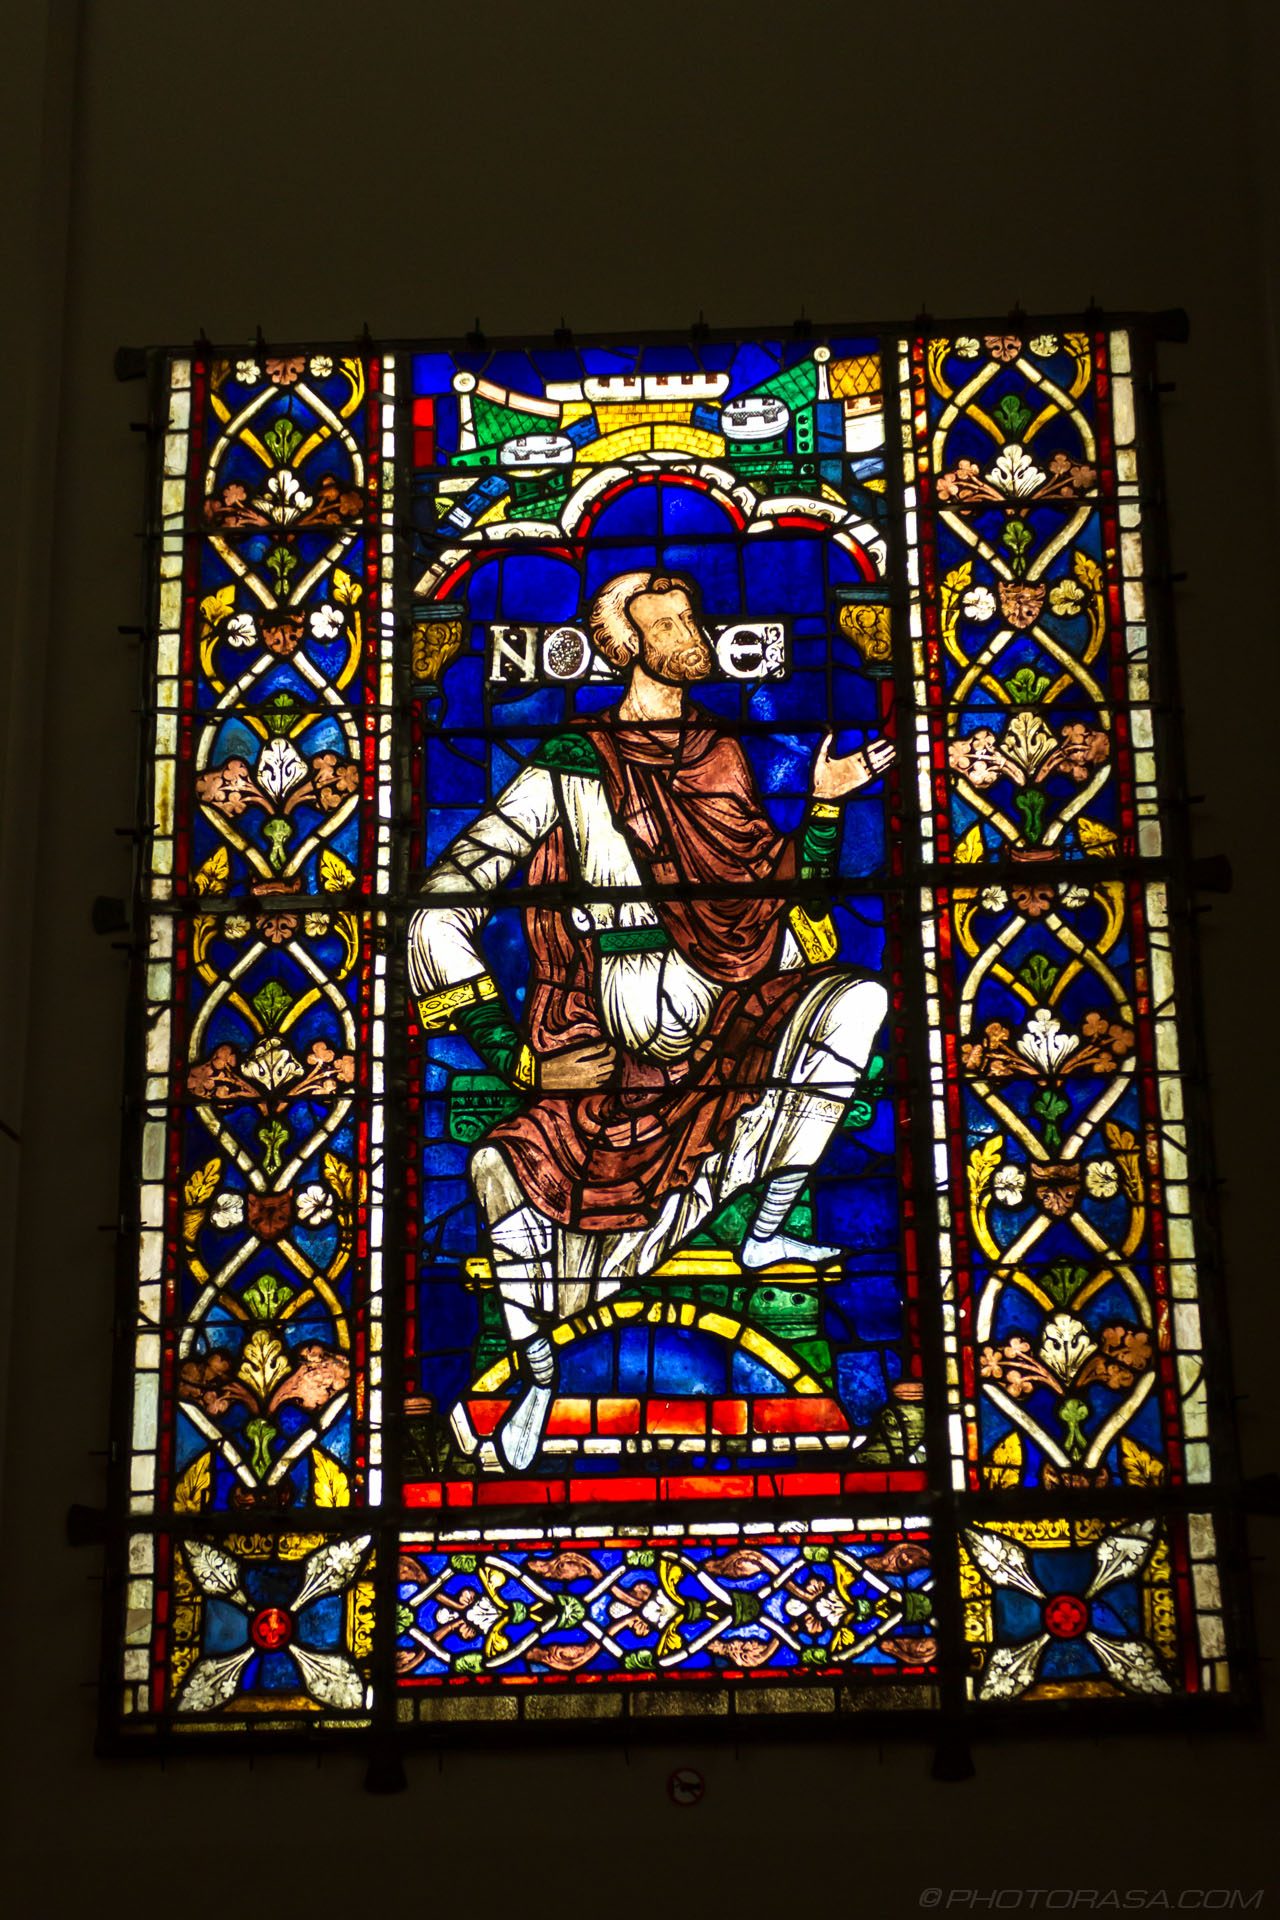 http://photorasa.com/places/cathedrals/genealogical-stained-glass-the-ancestors-of-jesus/attachment/noah-stained-glass/